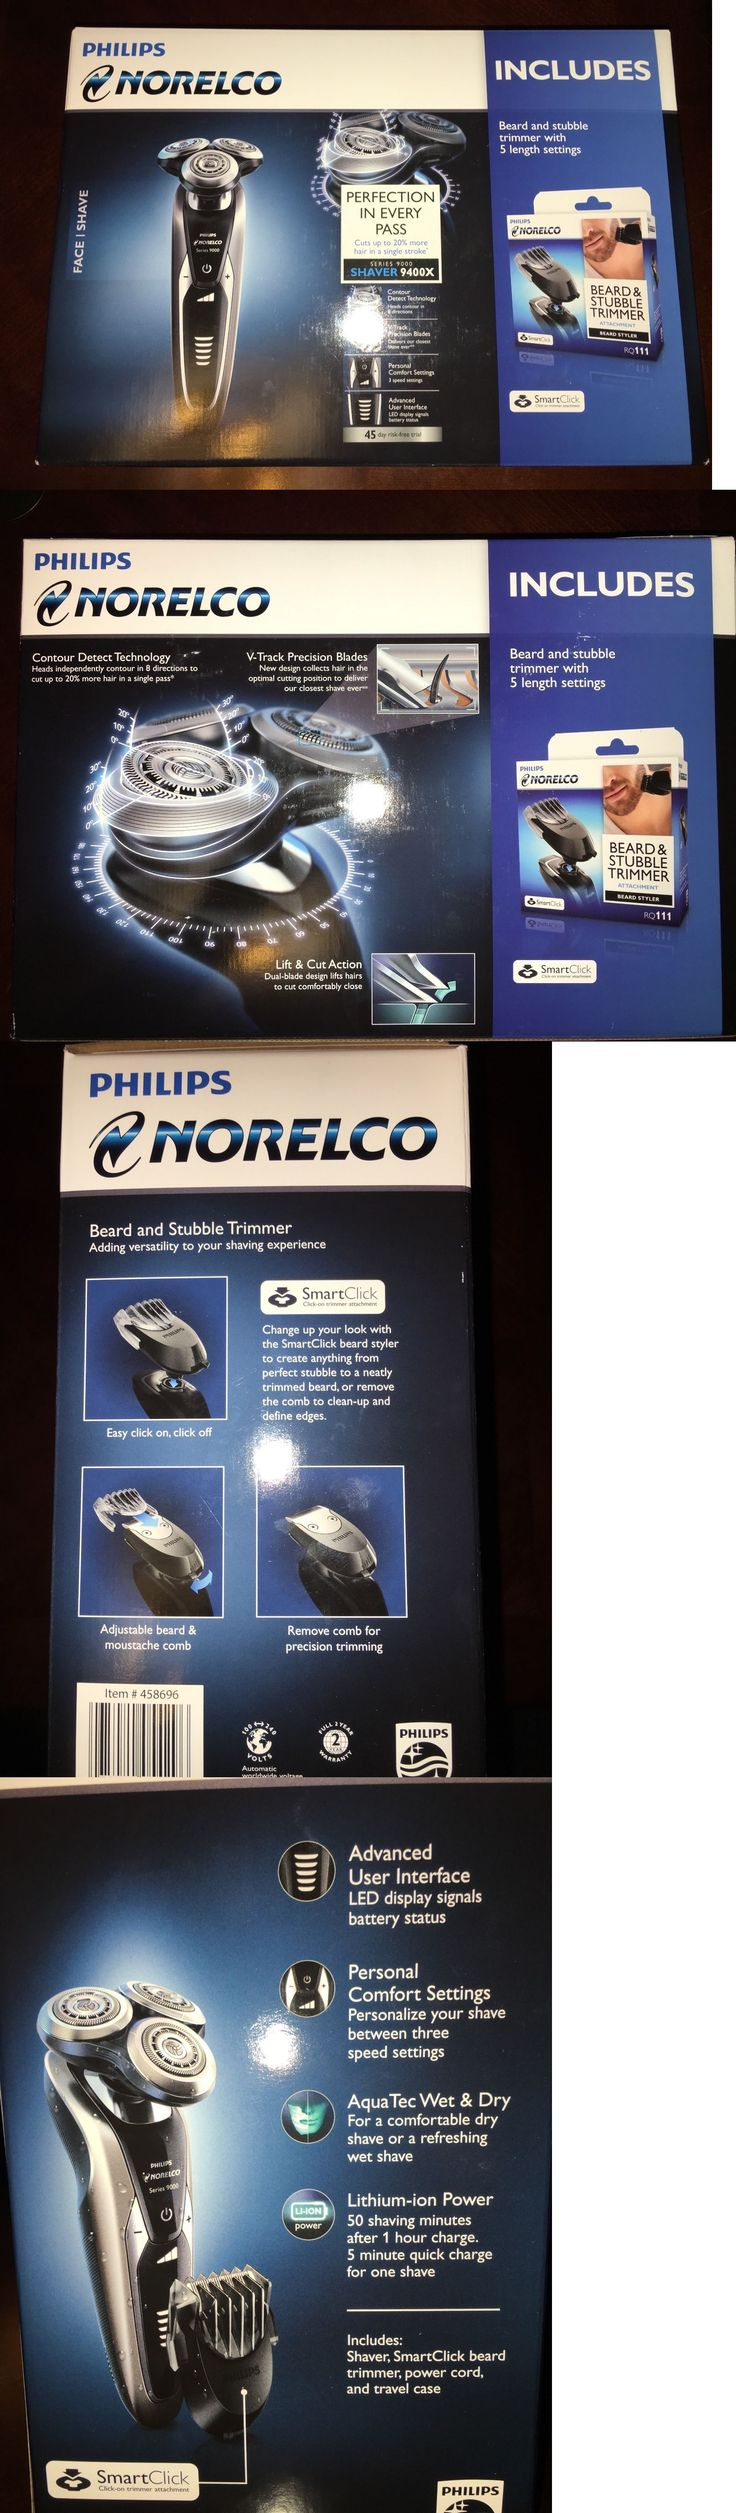 Mens Shavers: Philips Norelco Shaver 9400X Beard And Stubble Trimmer - Brand New In Box BUY IT NOW ONLY: $99.99